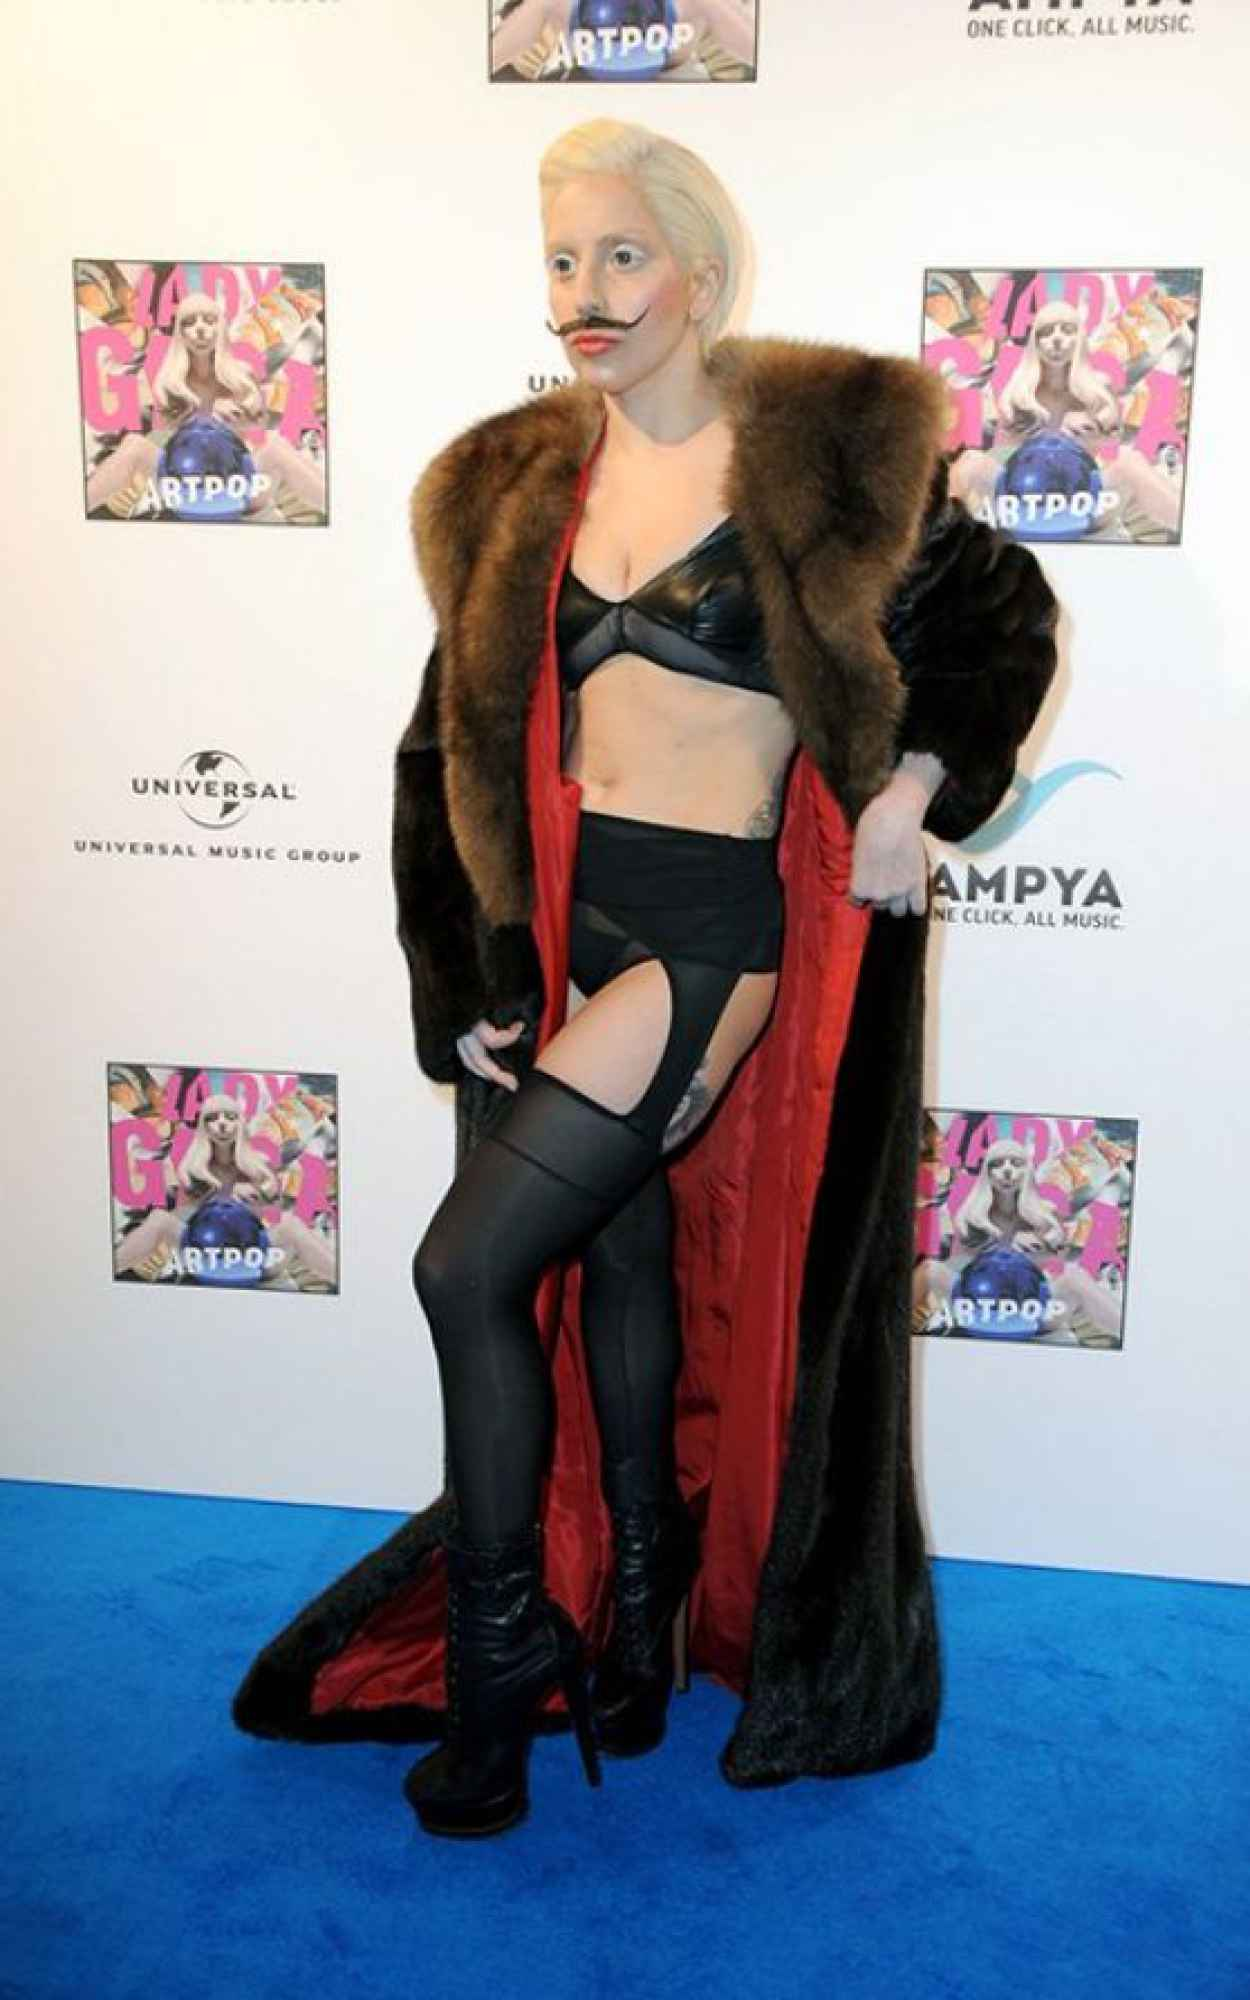 Lady Gaga Red Carpet Photos - Artpop Listening Party in Berlin-1